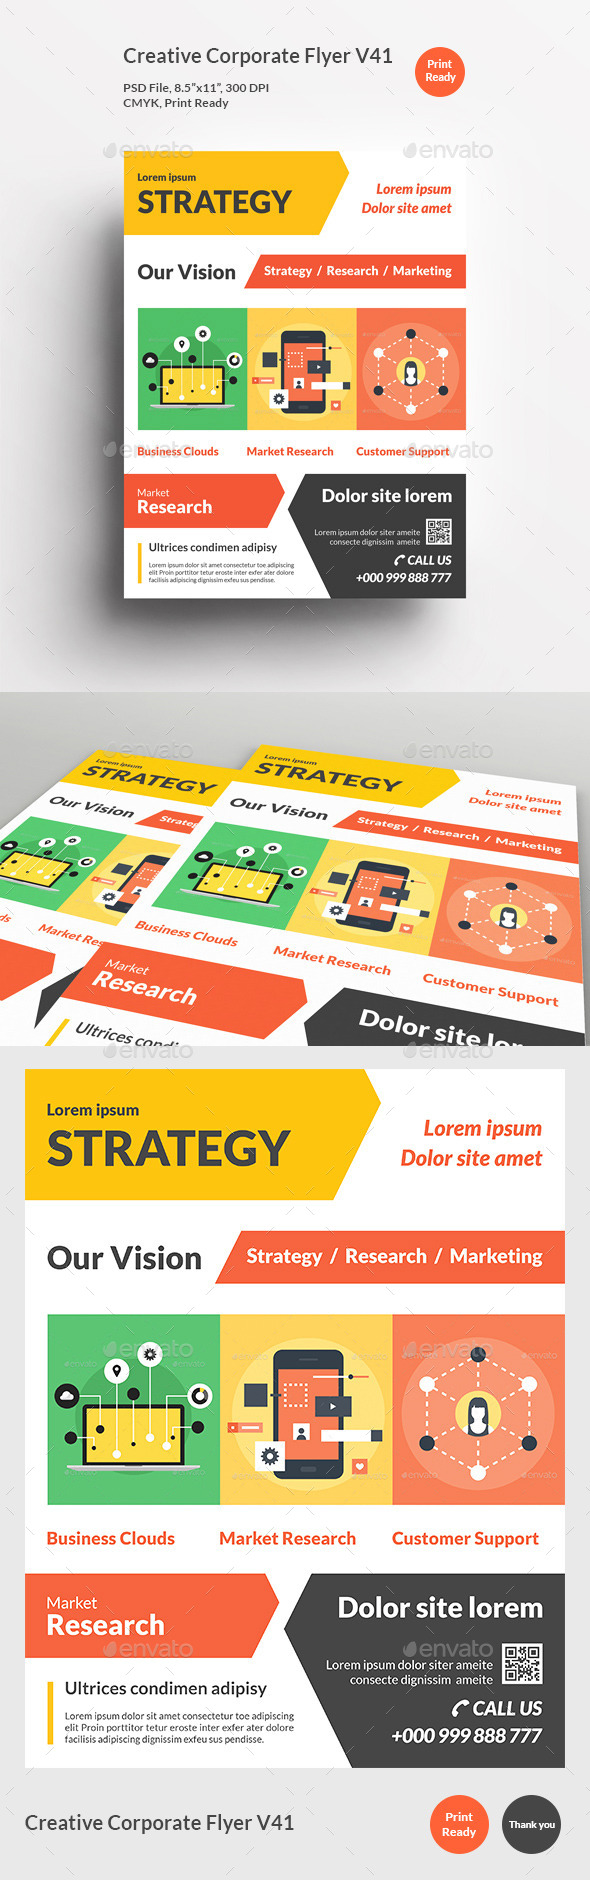 Creative Corporate Flyer V41